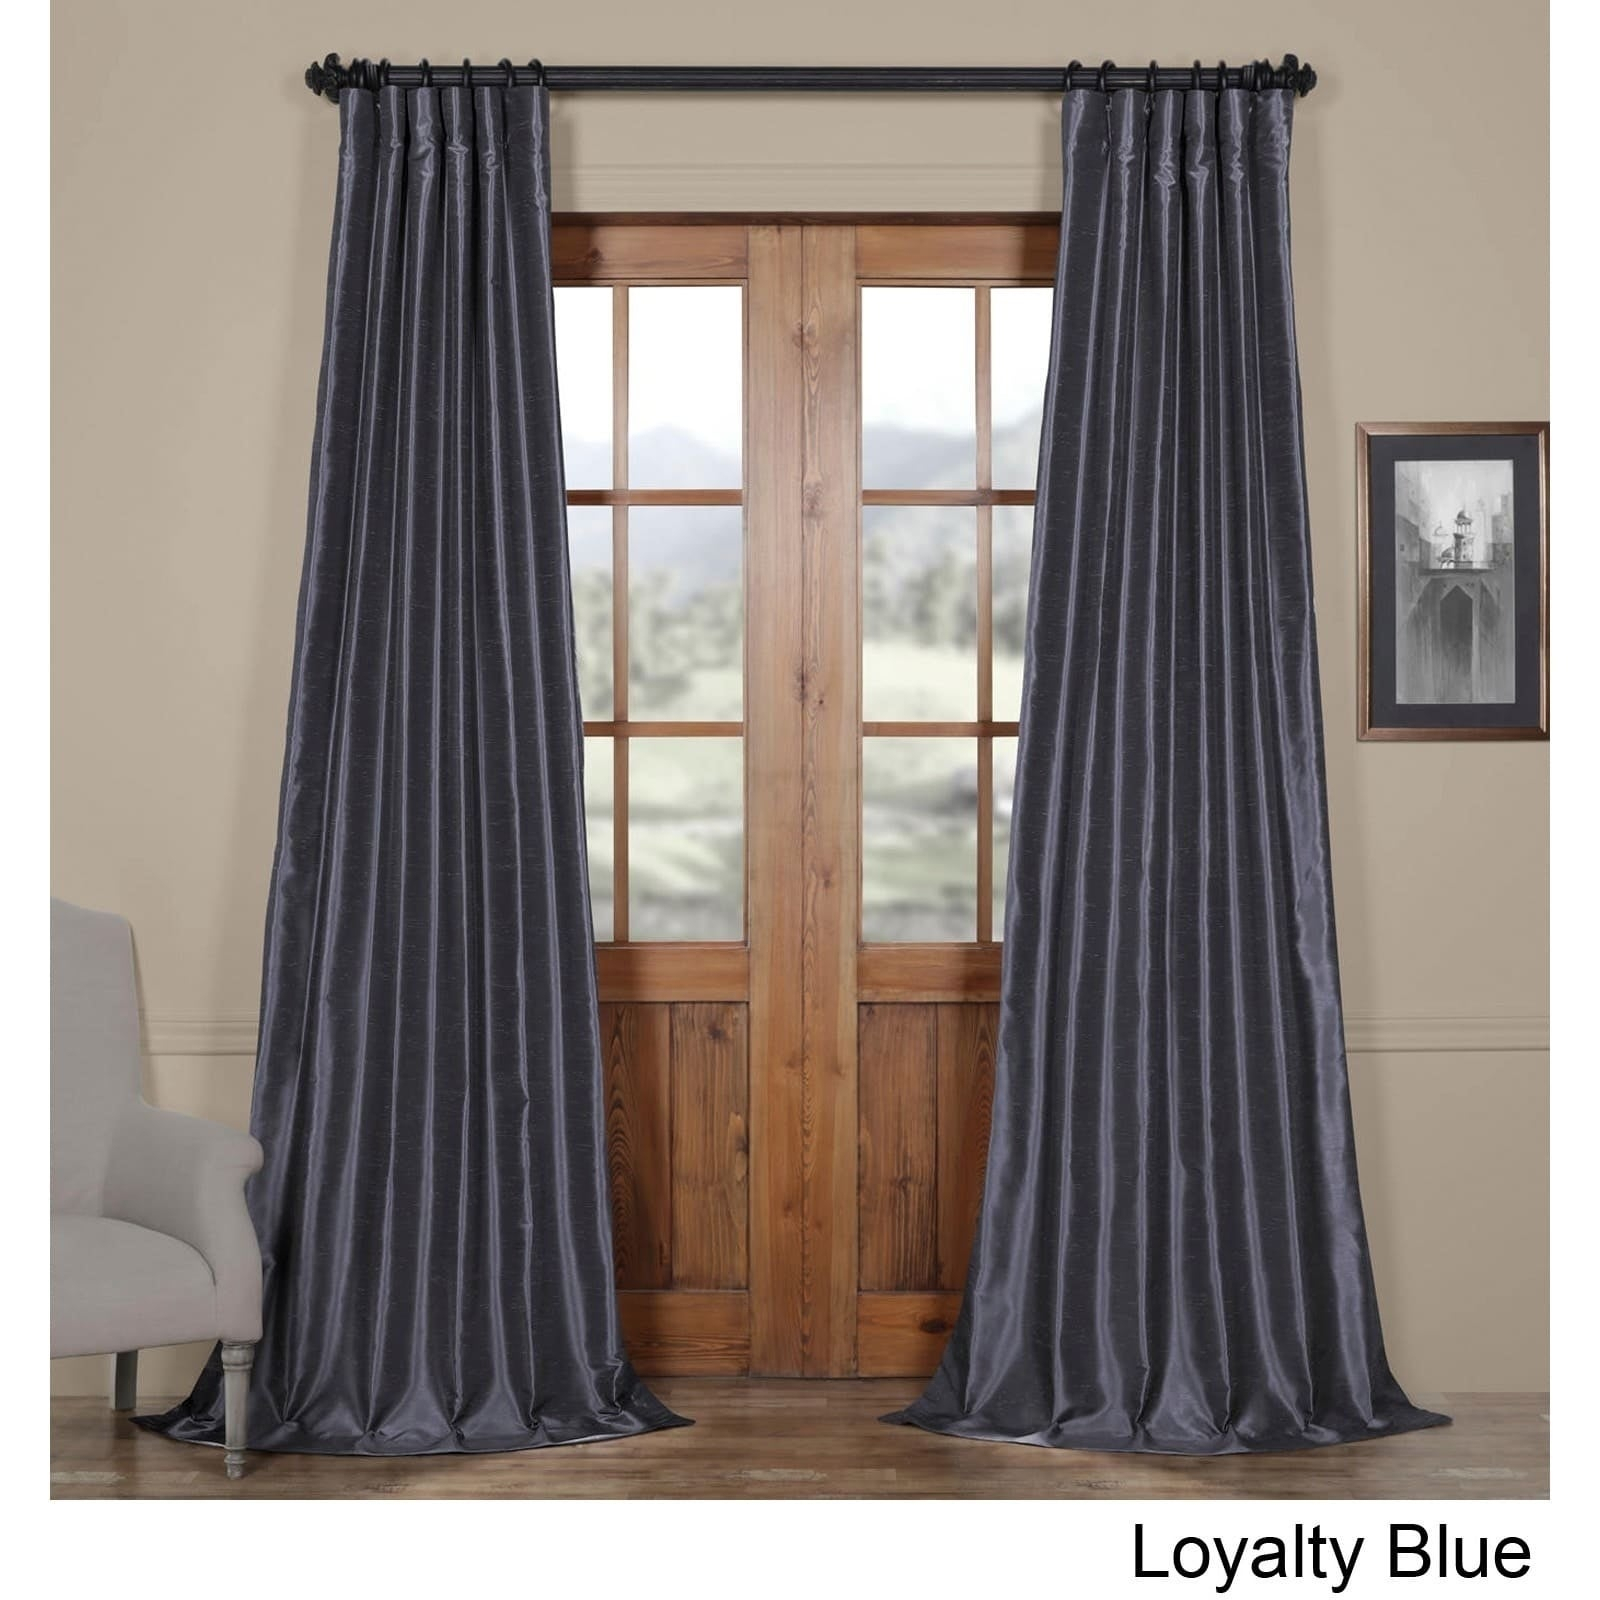 Exclusive Fabrics Vintage Textured Faux Dupioni Silk Curtain Panel 96' In Captian's Blue (as Is Item) With Regard To Vintage Textured Faux Dupioni Silk Curtain Panels (View 11 of 30)